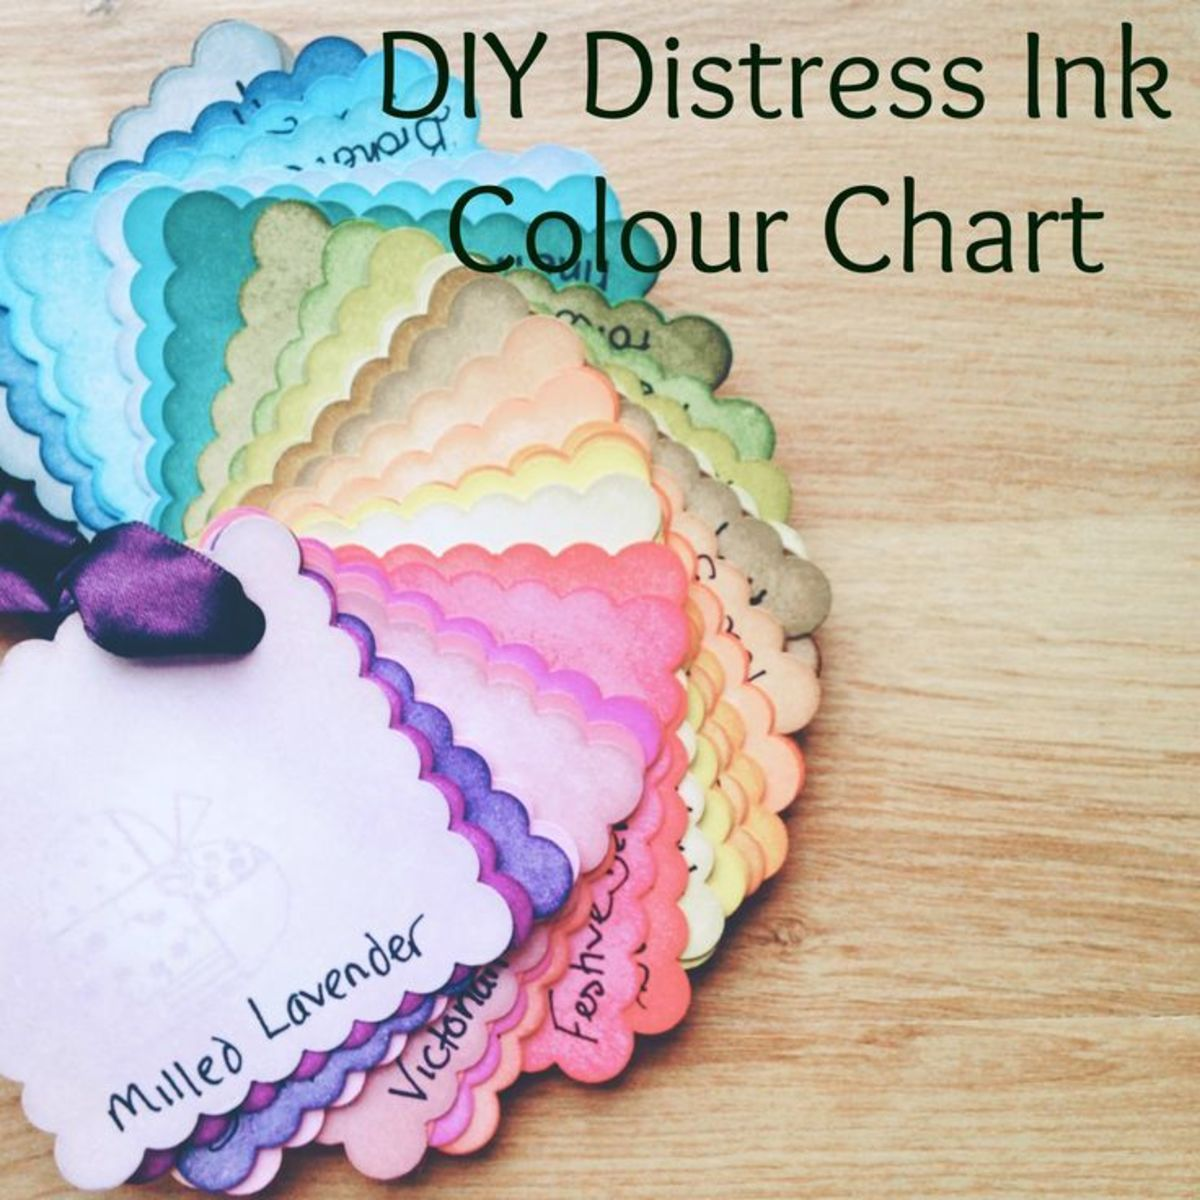 The Distress Ink Sprays come in the same colors as the Distress Ink Pads